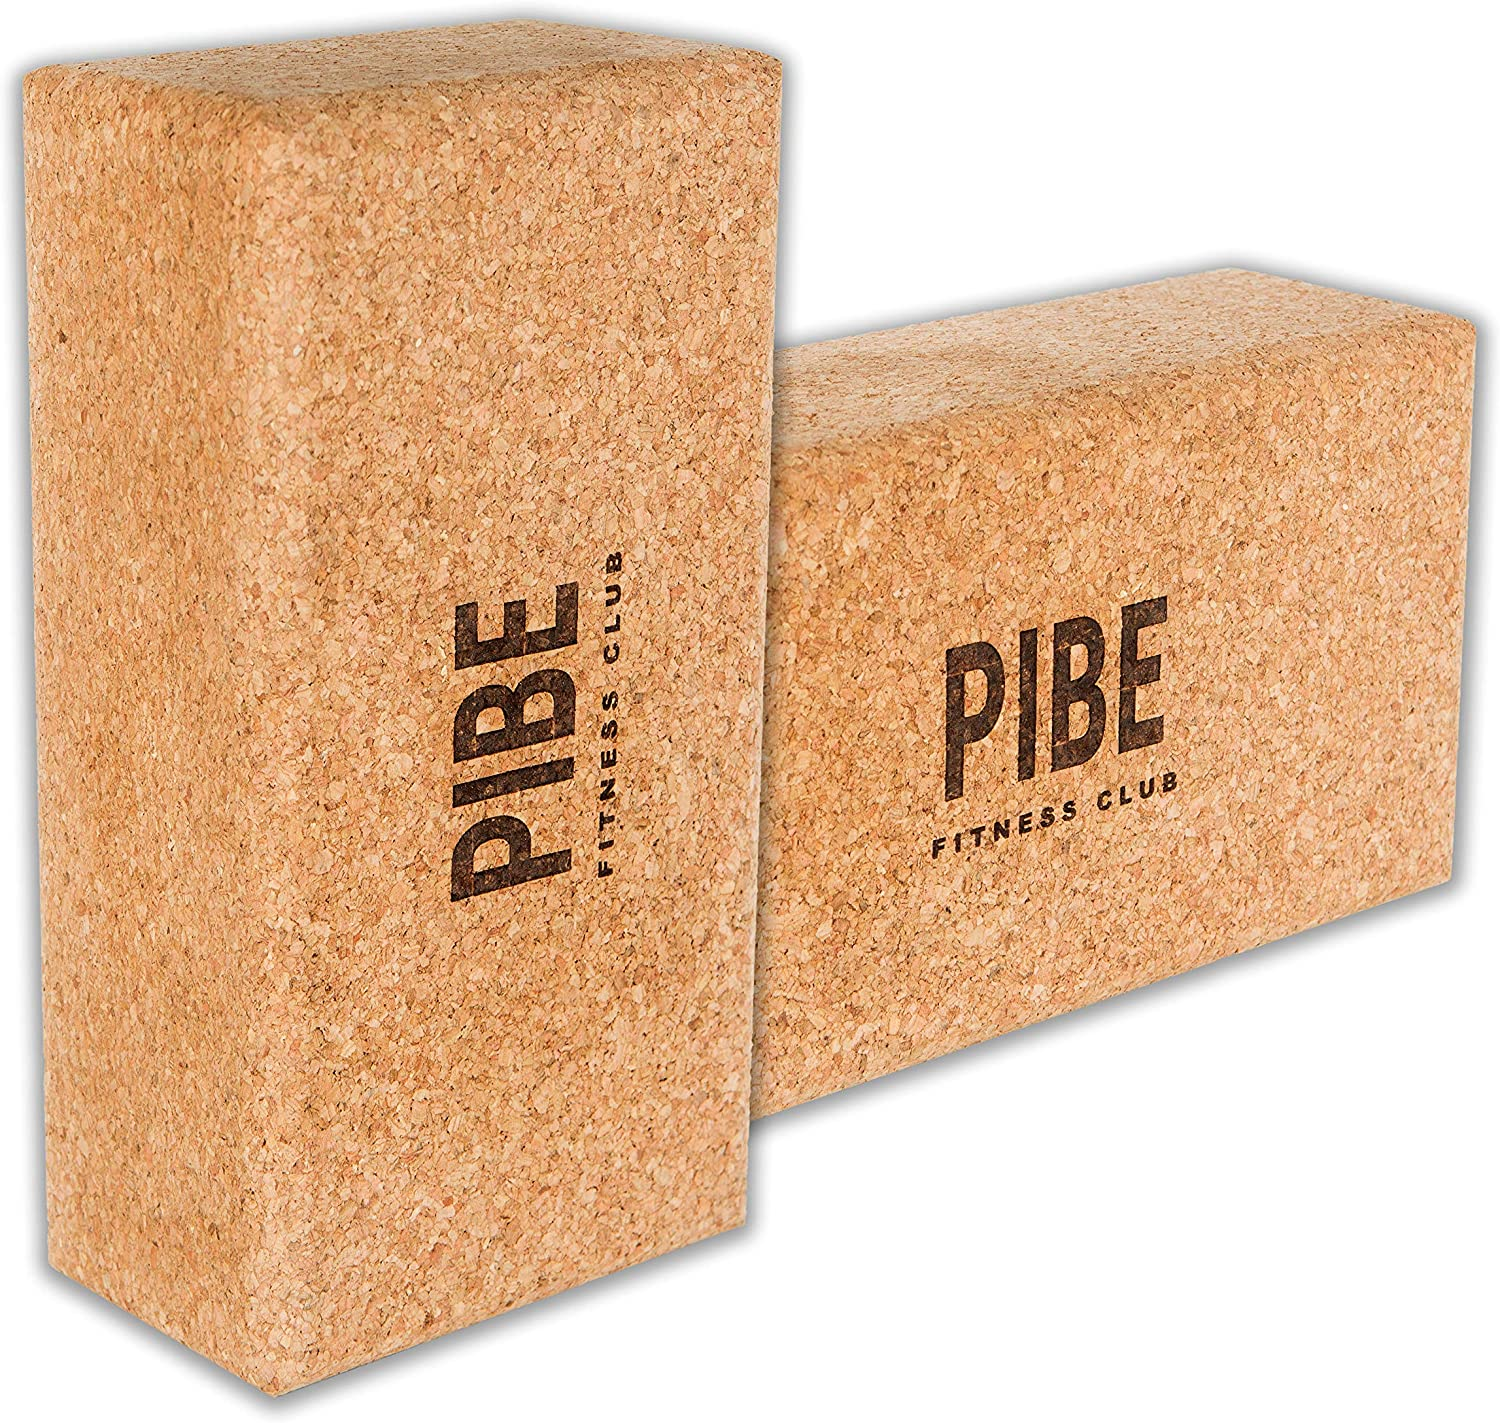 92 - Bloque Yoga corcho natural Pibe